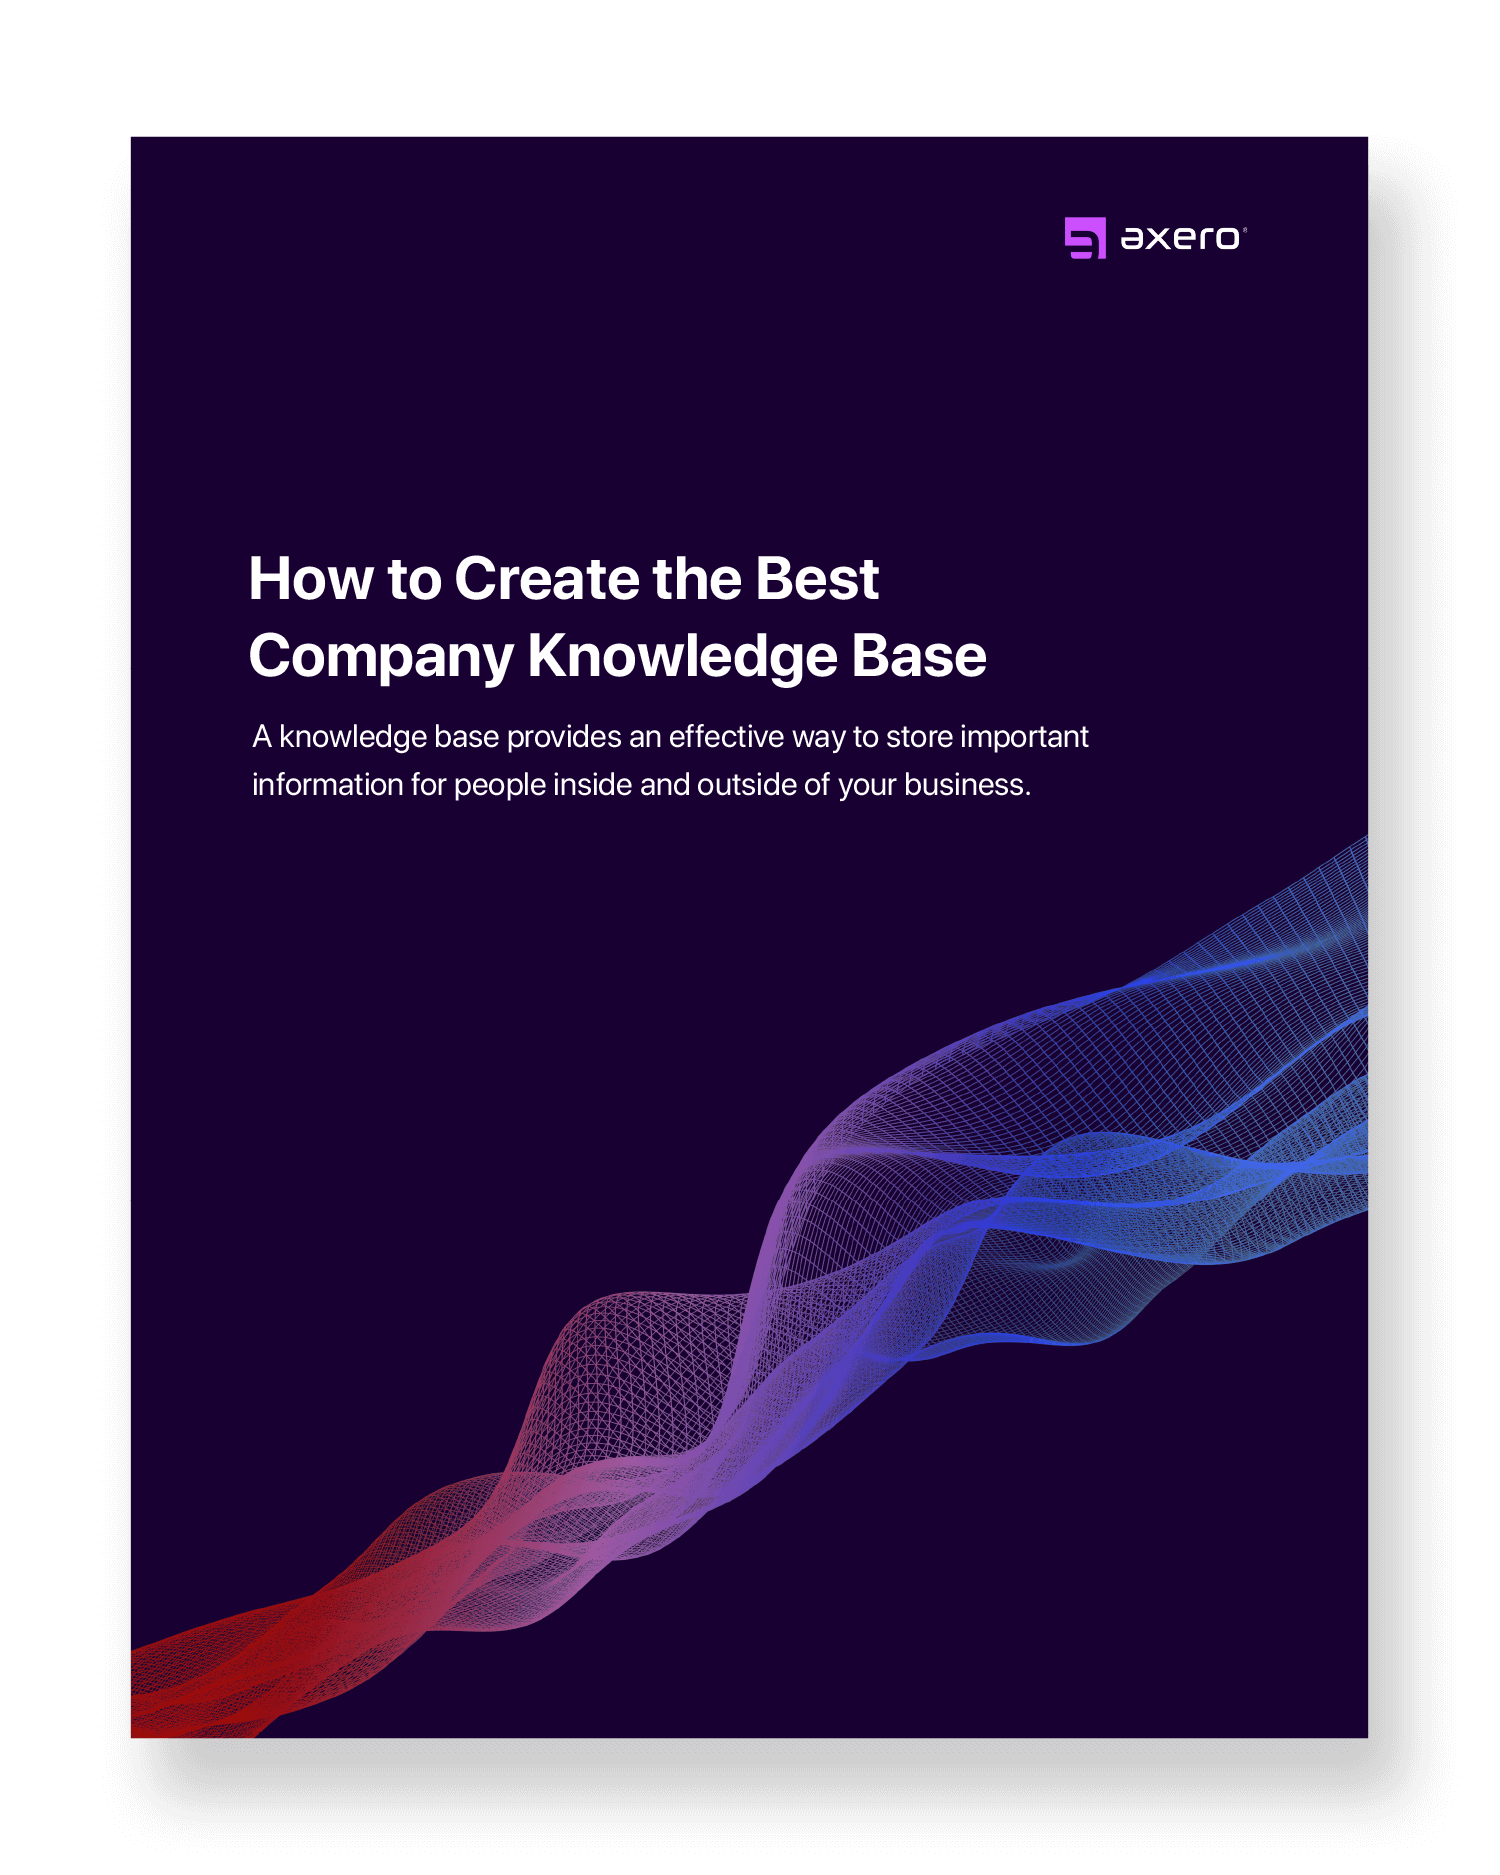 7 Essentials to Creating a Relevant Knowledge Base for Your Company